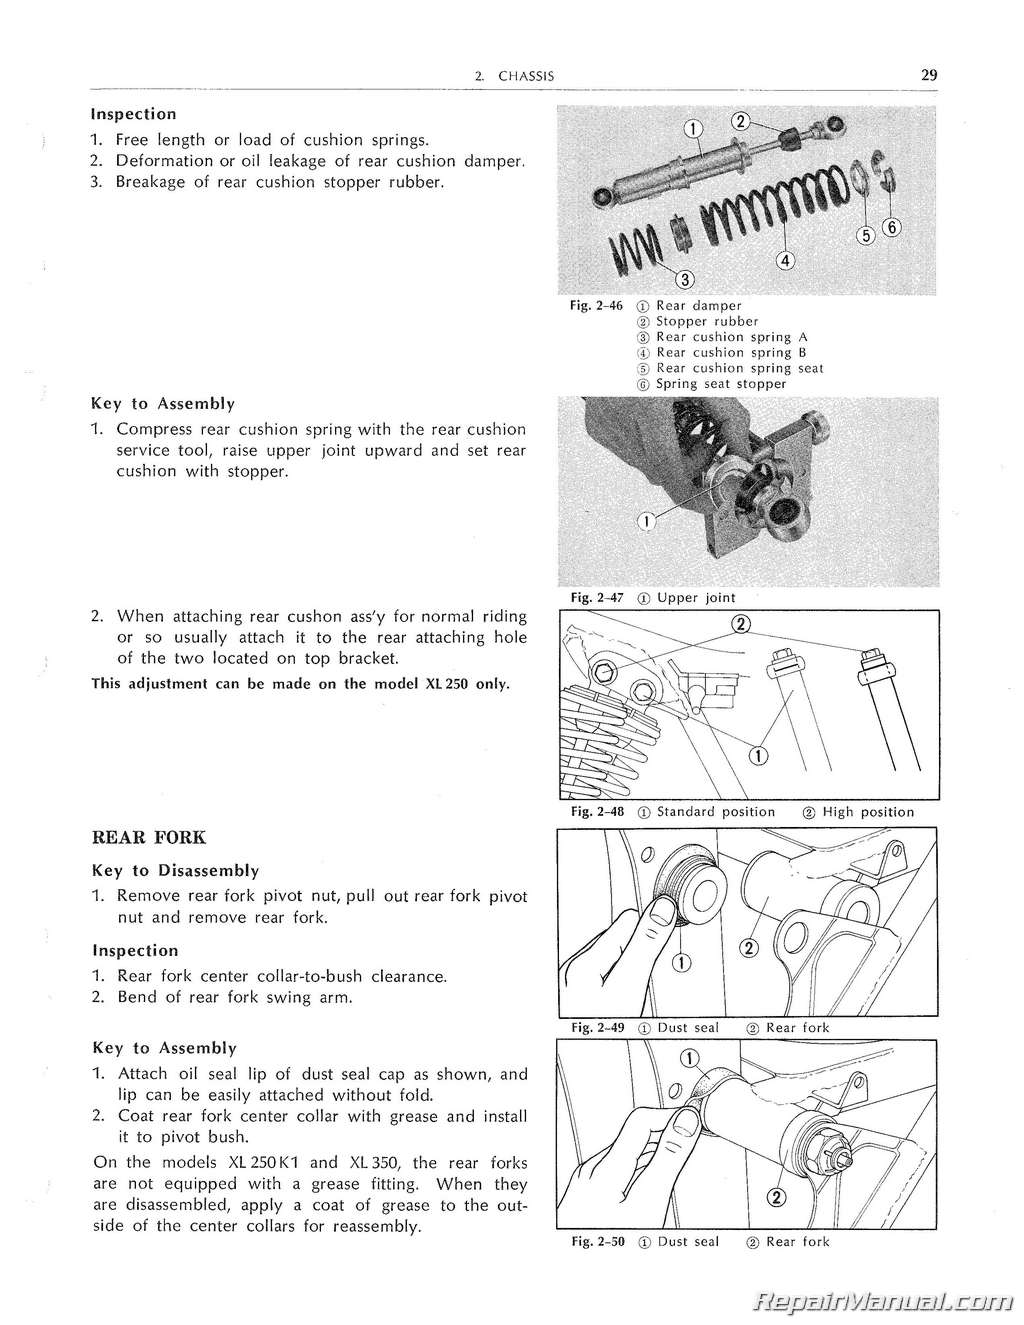 Honda XL250 XL350 Service Manual 1972